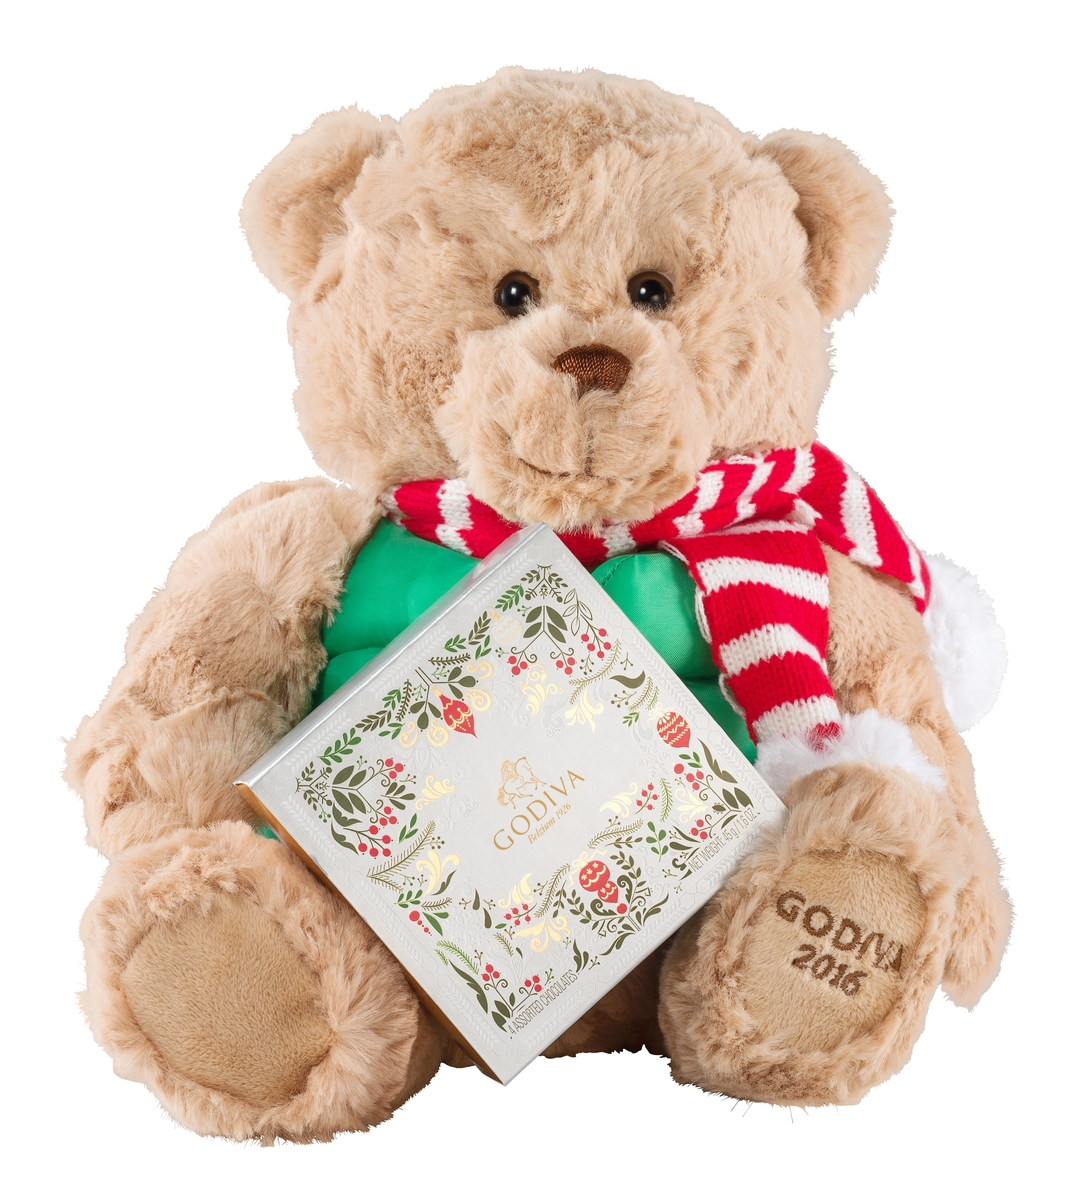 Godiva_Bear_2016_with_Box